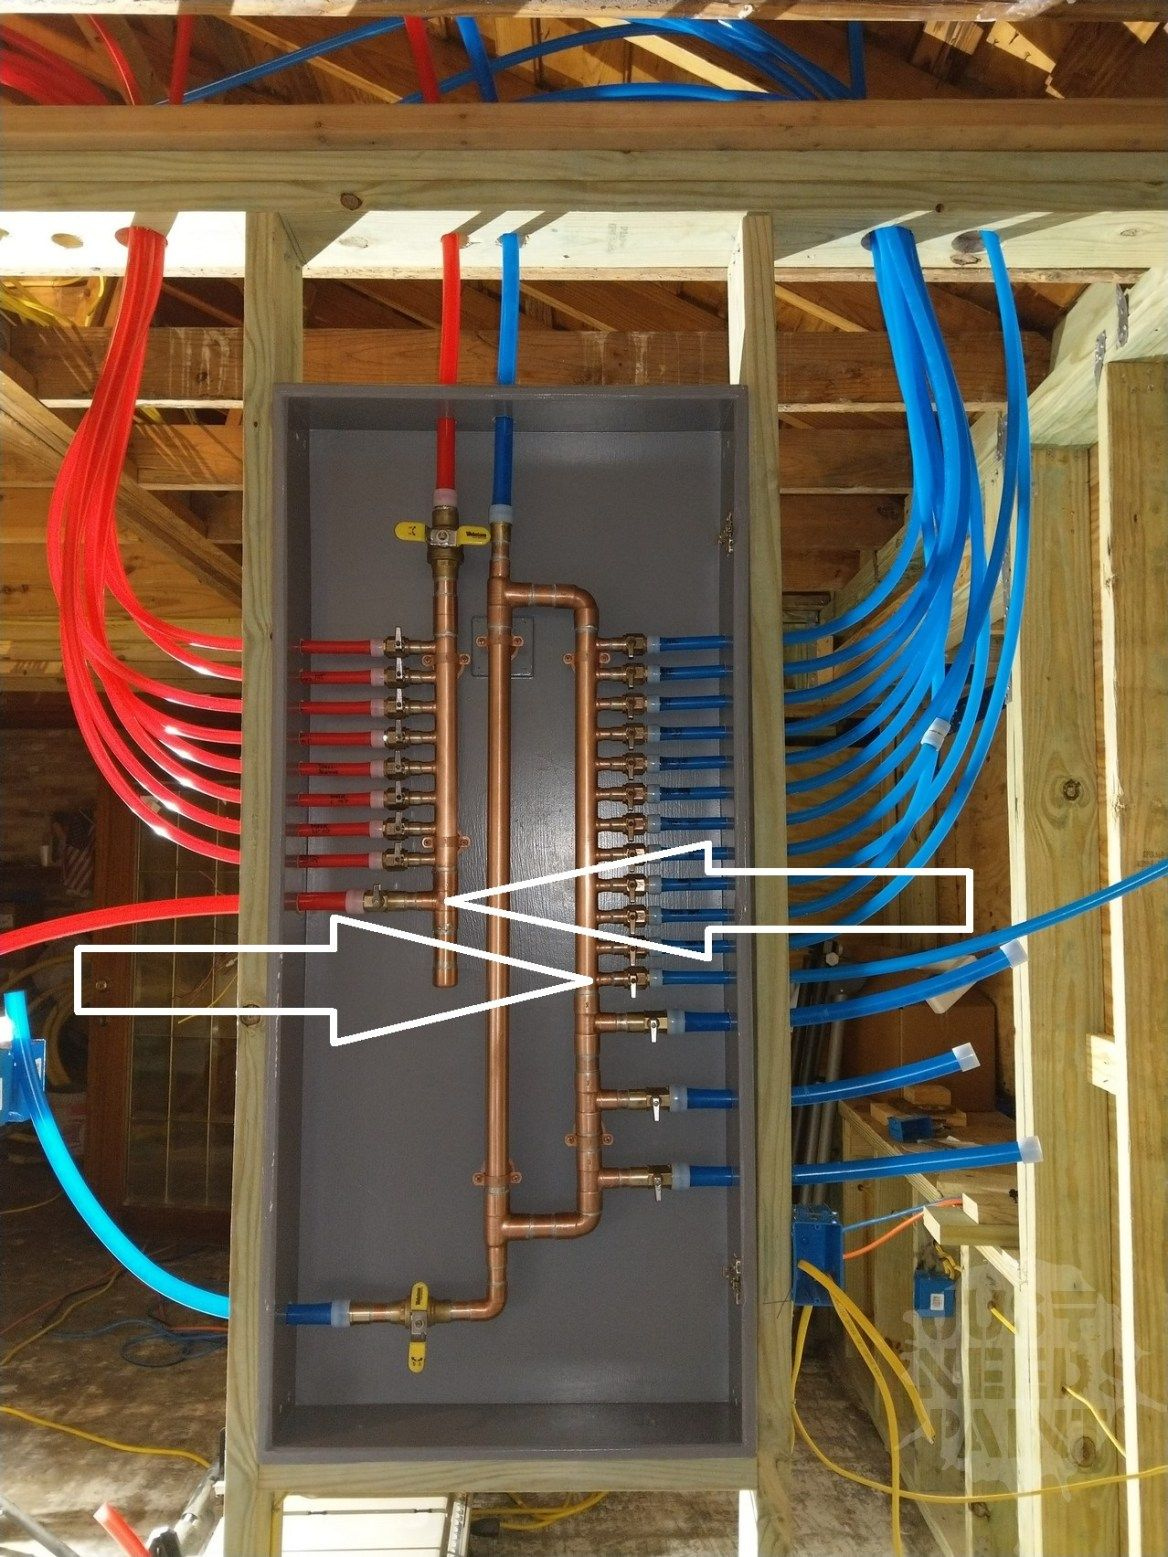 Sanity Saving Pex Manifold Installation Tips Just Needs Paint Pex Plumbing Plumbing Water Plumbing